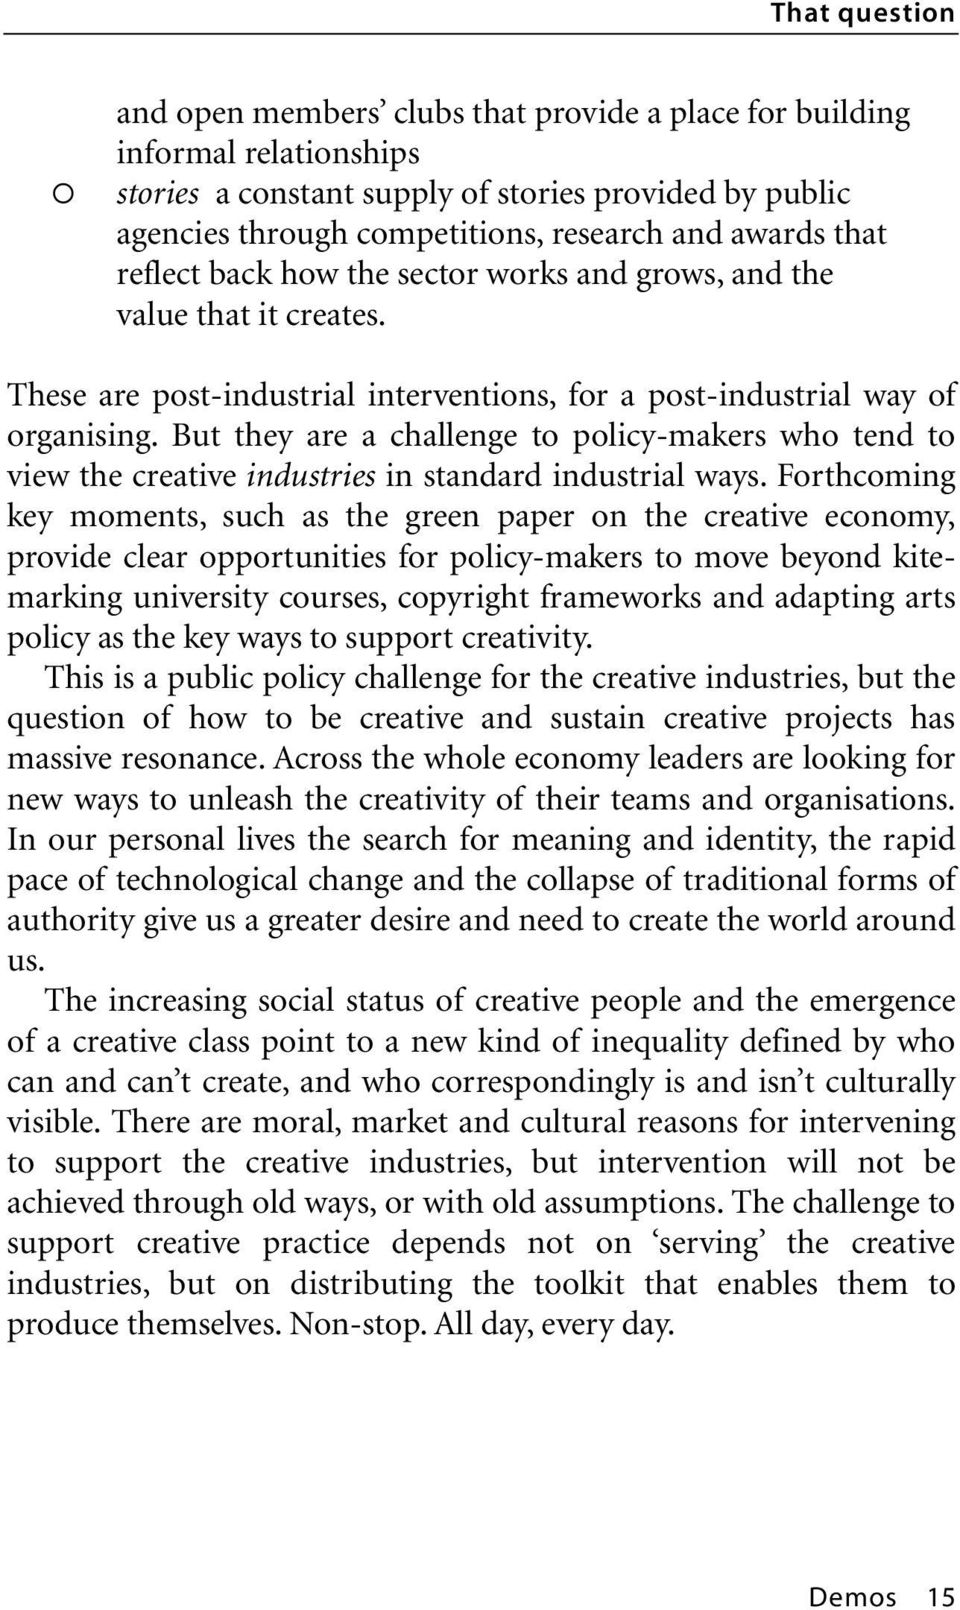 But they are a challenge to policy-makers who tend to view the creative industries in standard industrial ways.